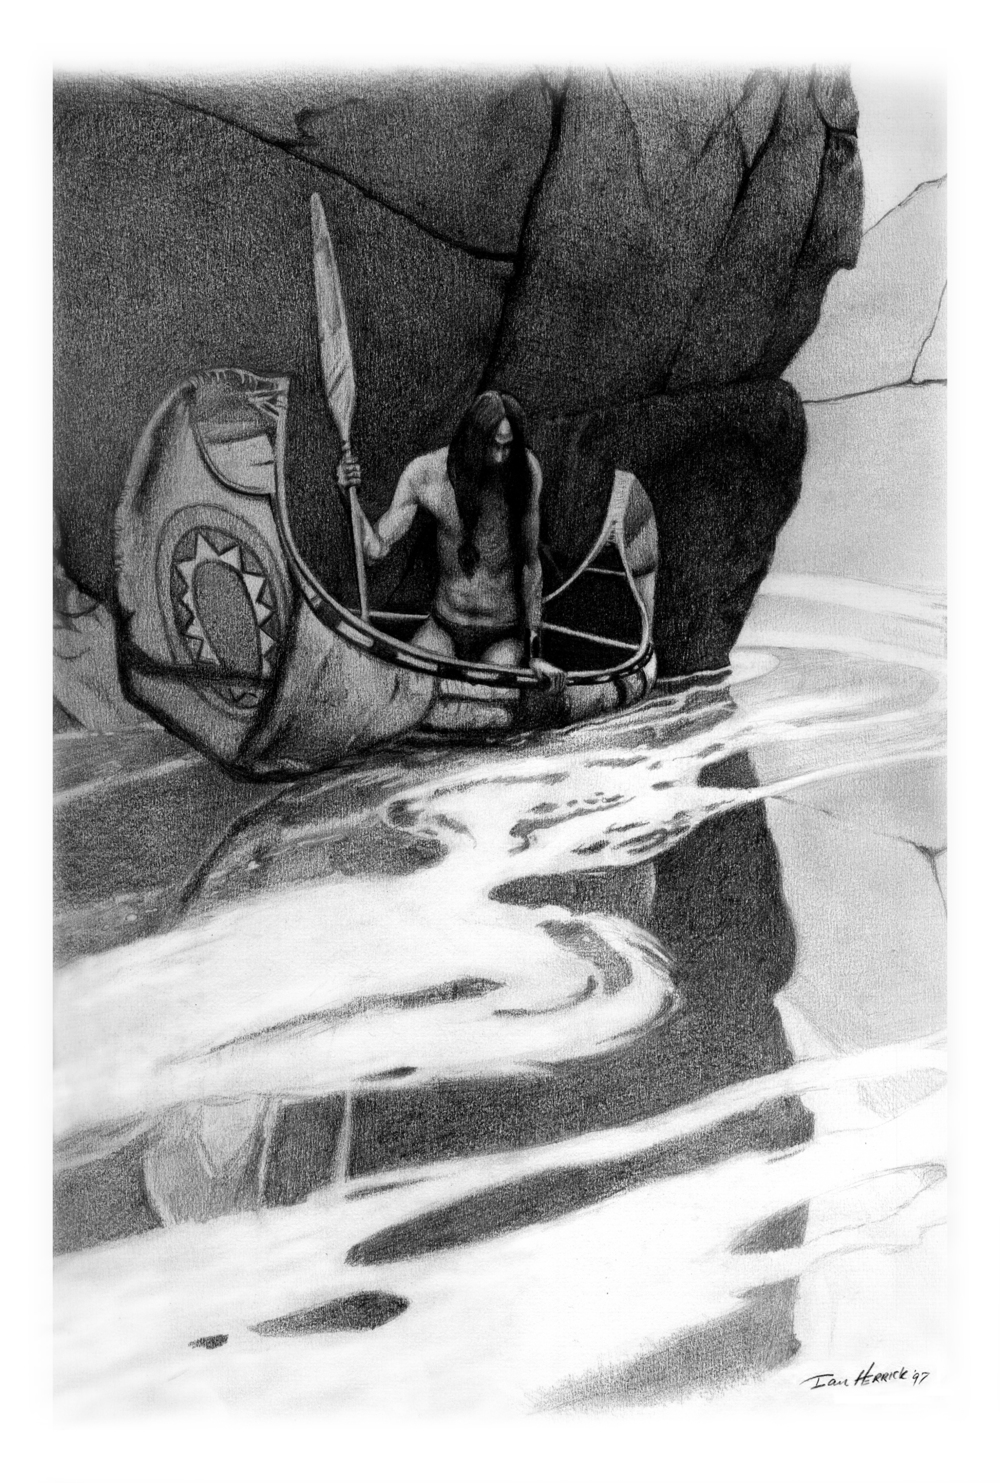 'In the Crystal Depths' - Homage to NC Wyeth